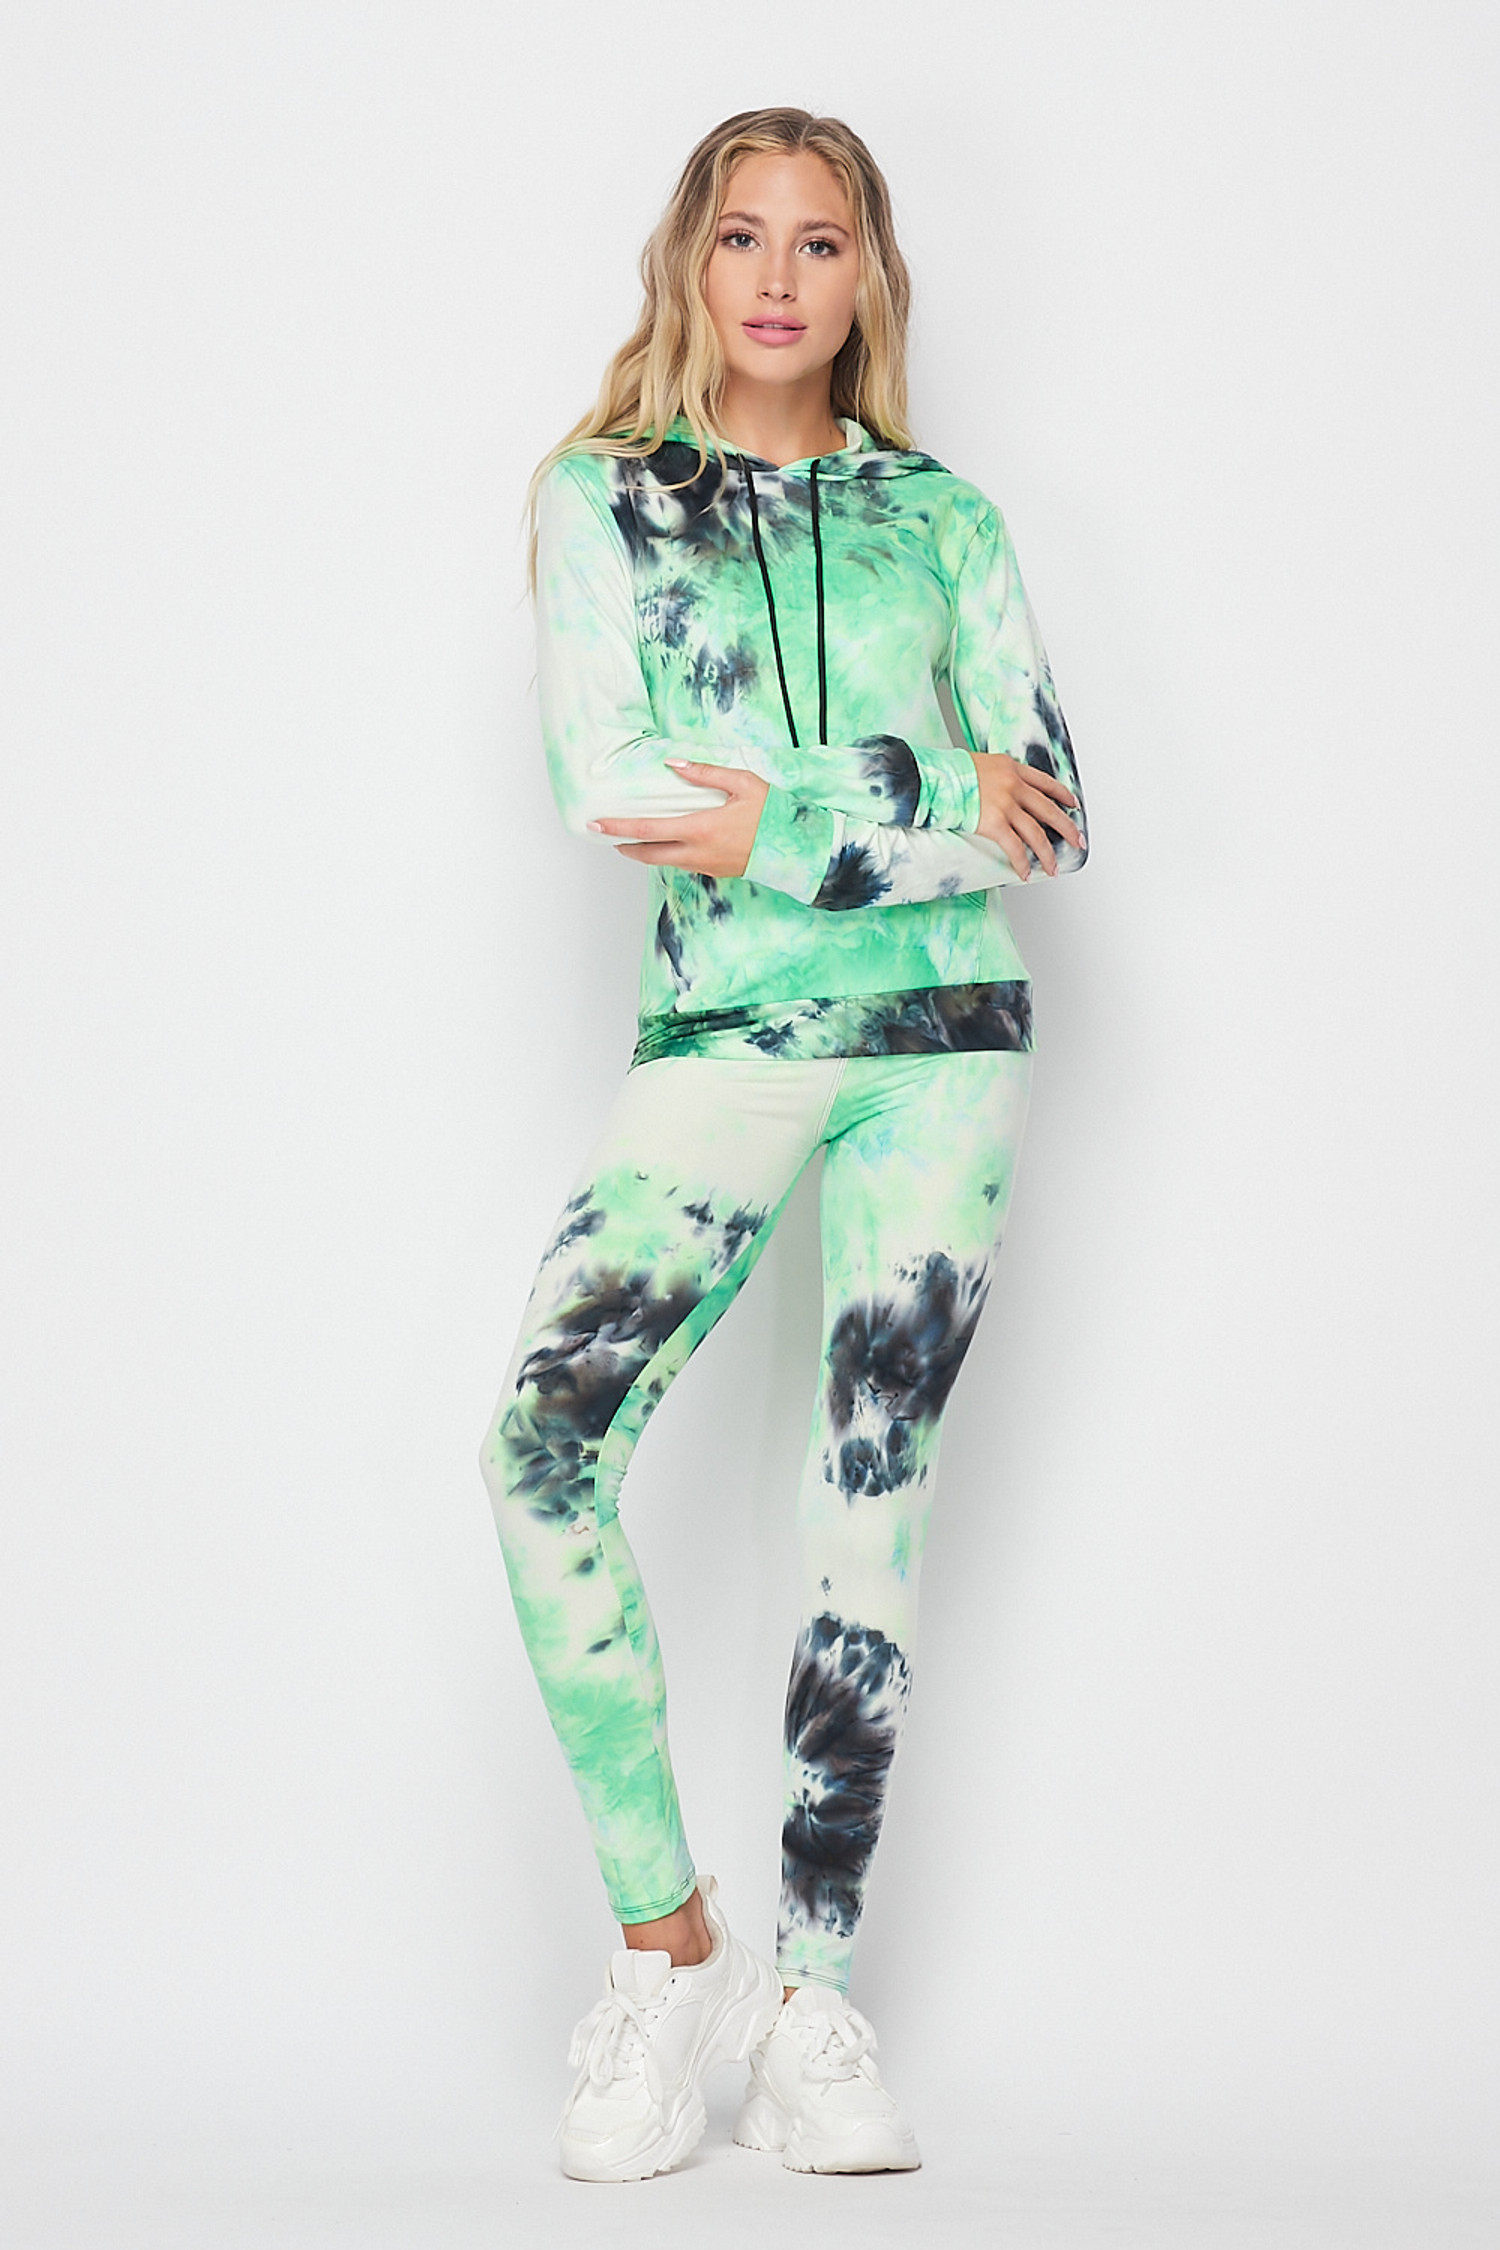 Front side of Green Tie Dye 2 Piece Leggings and Hooded Jacket Set